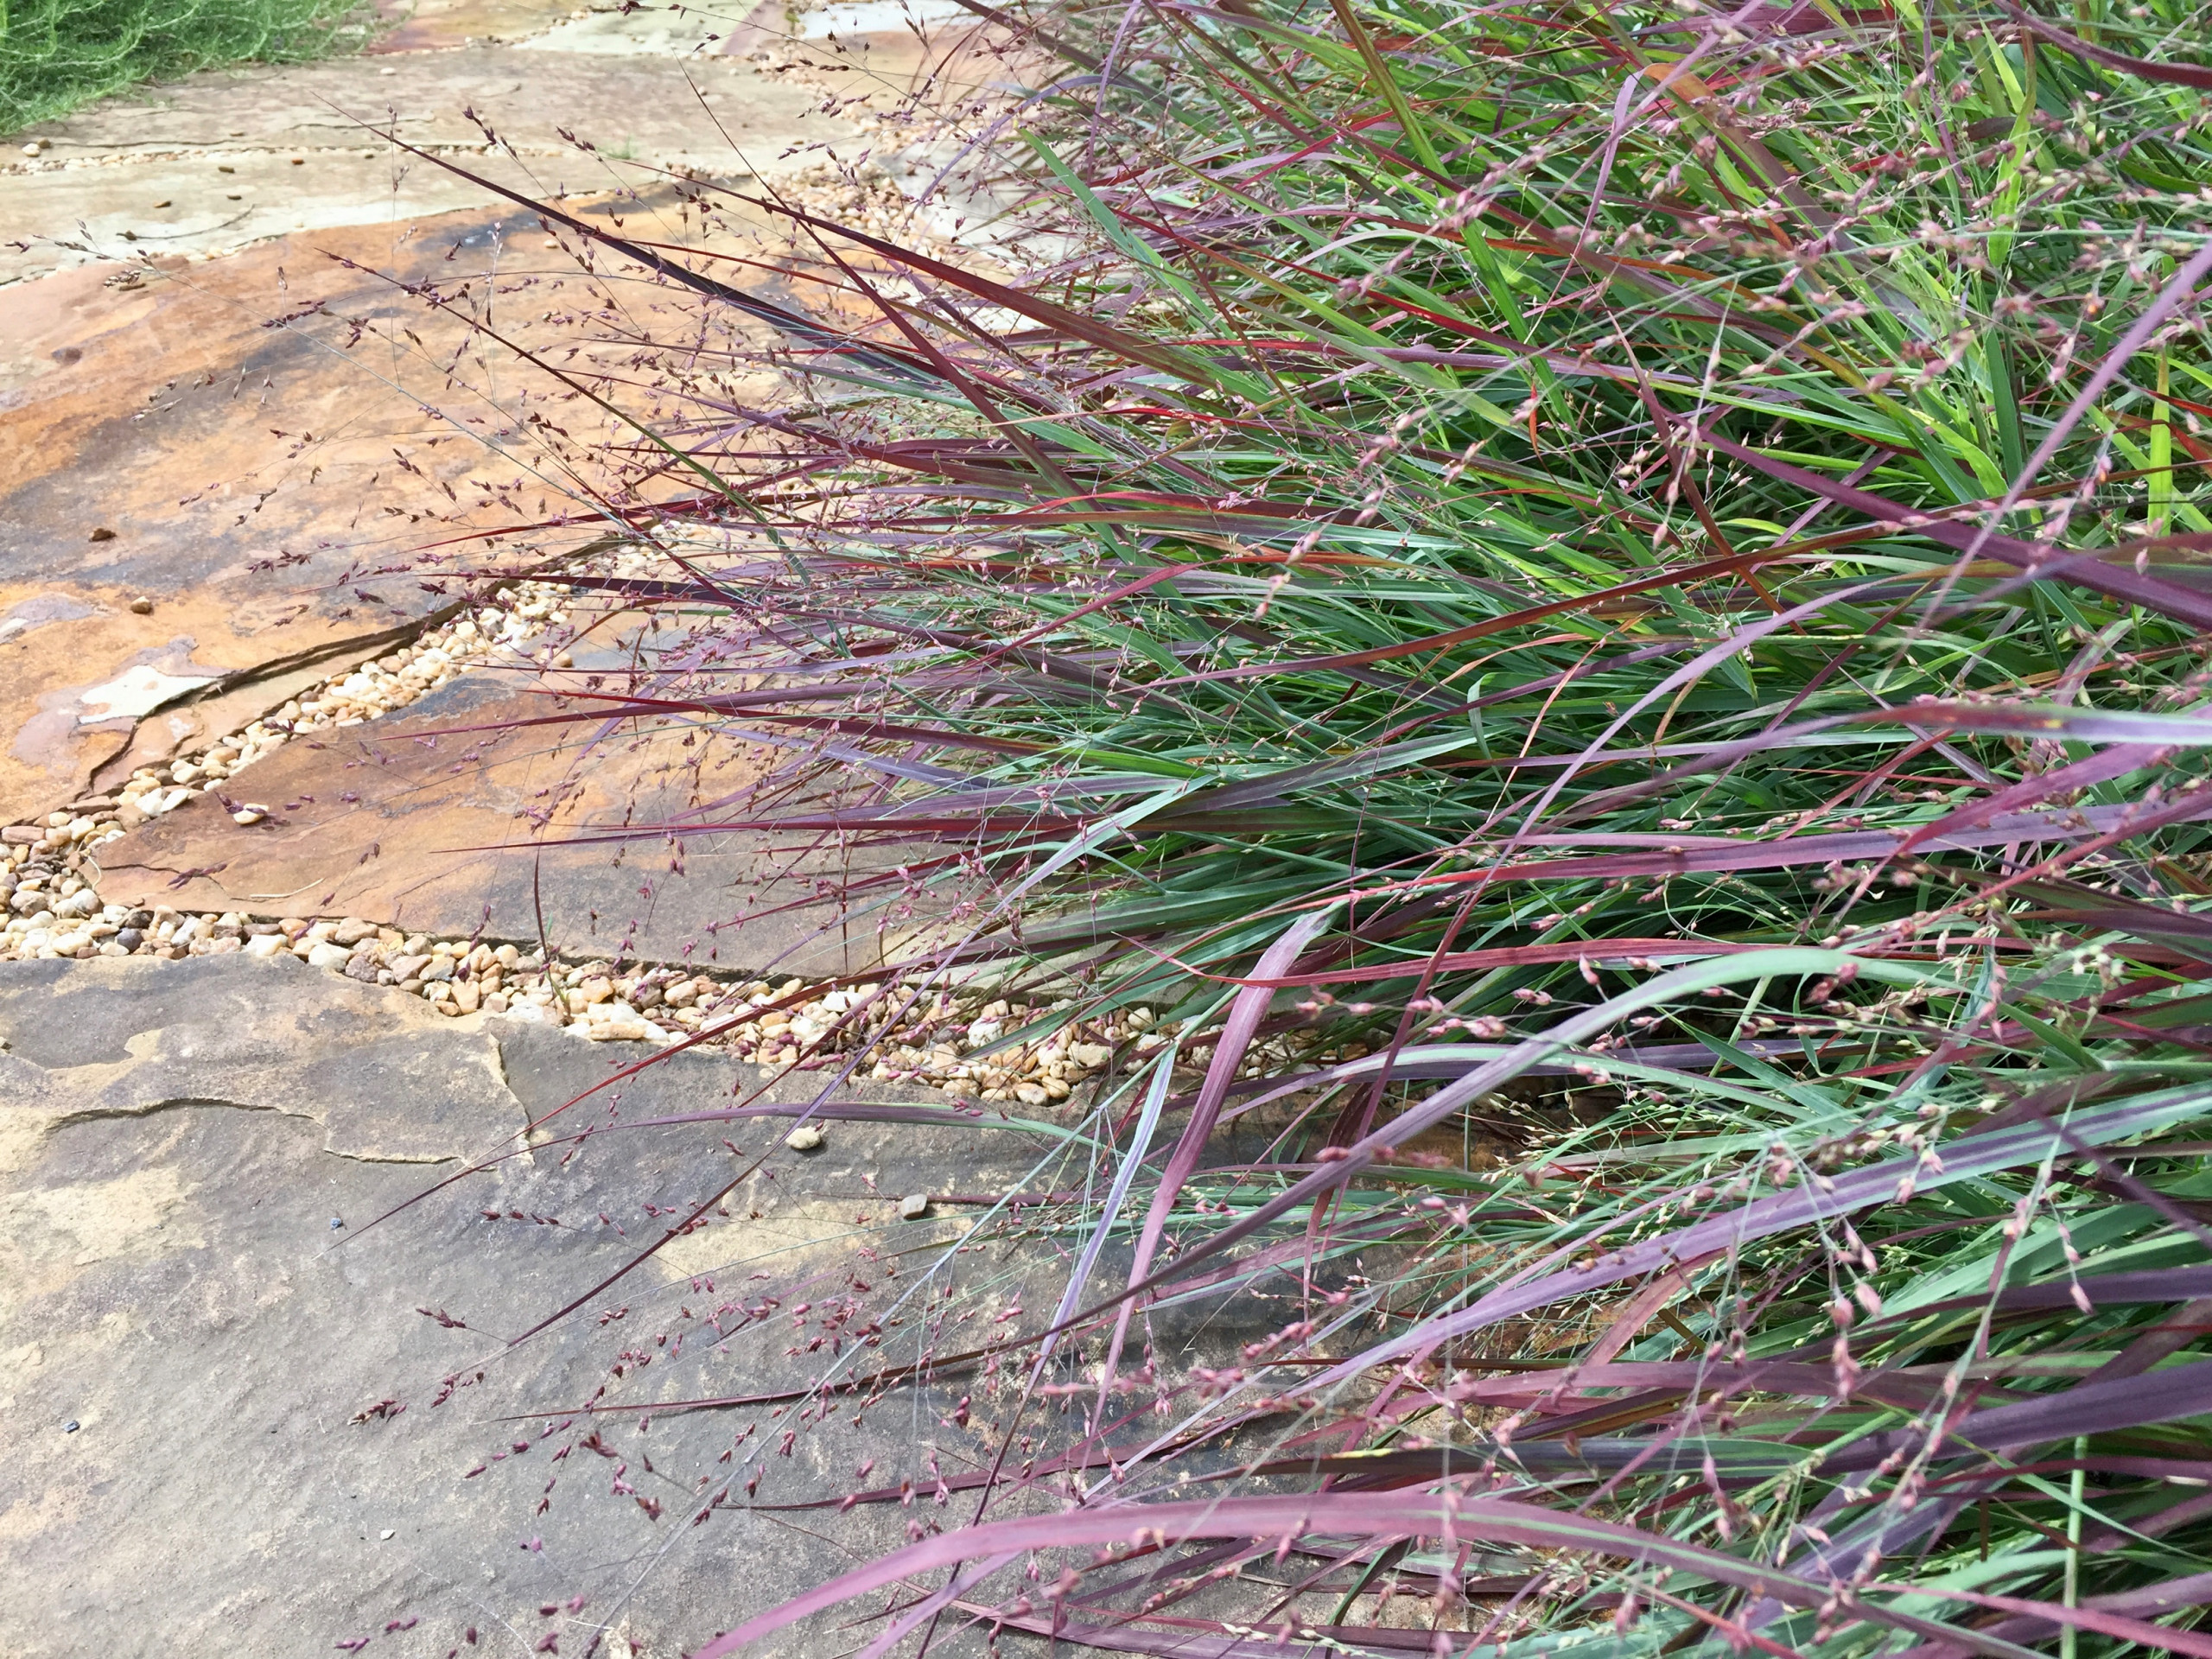 'Cheyenne Sky' panicum plays well with flagstone sidewalk.